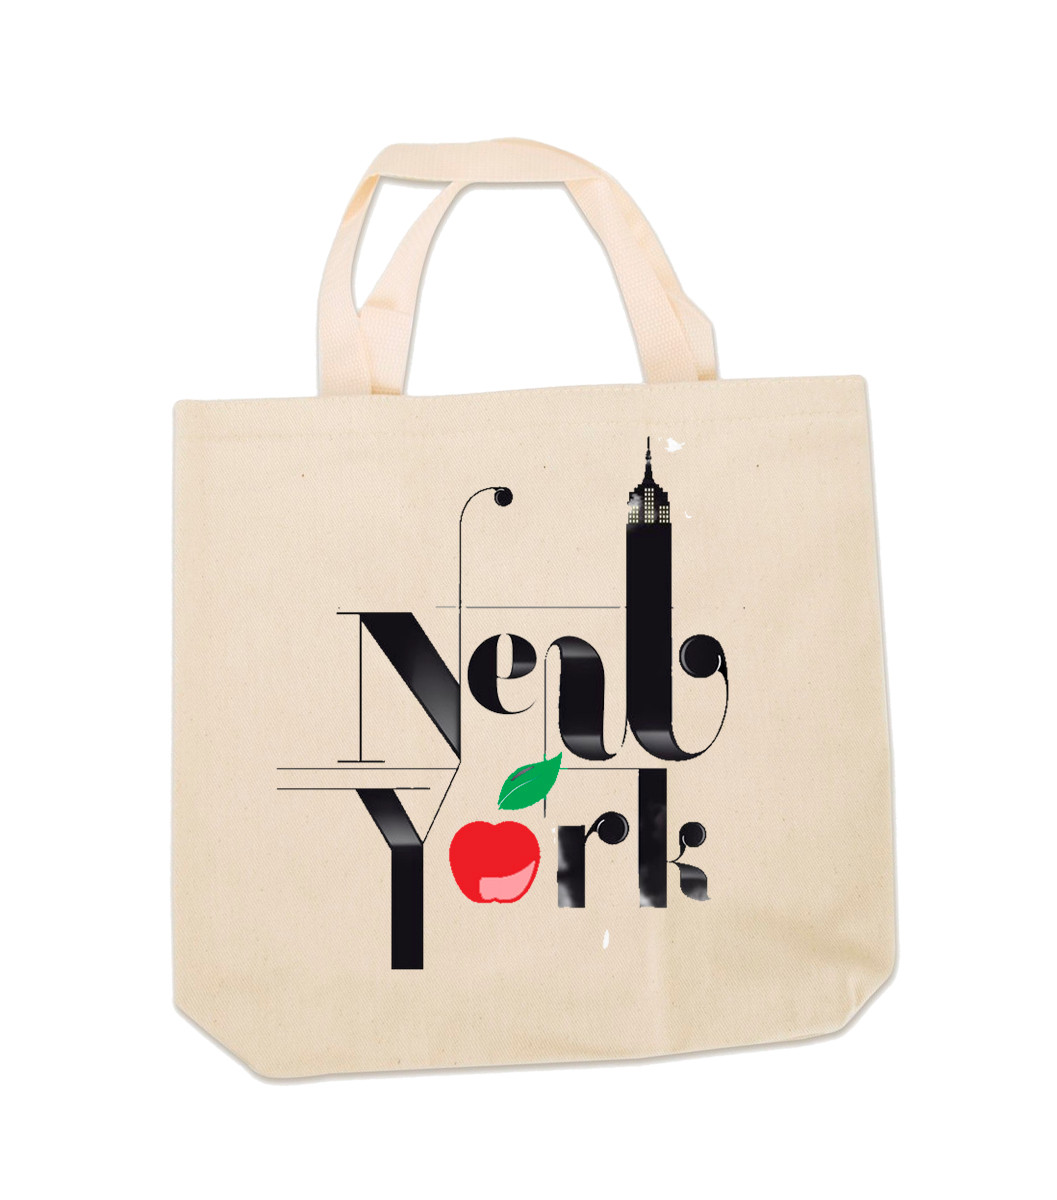 New York City Bags, Robin Ruth NY Bags, Tote Bags, Gift Bags